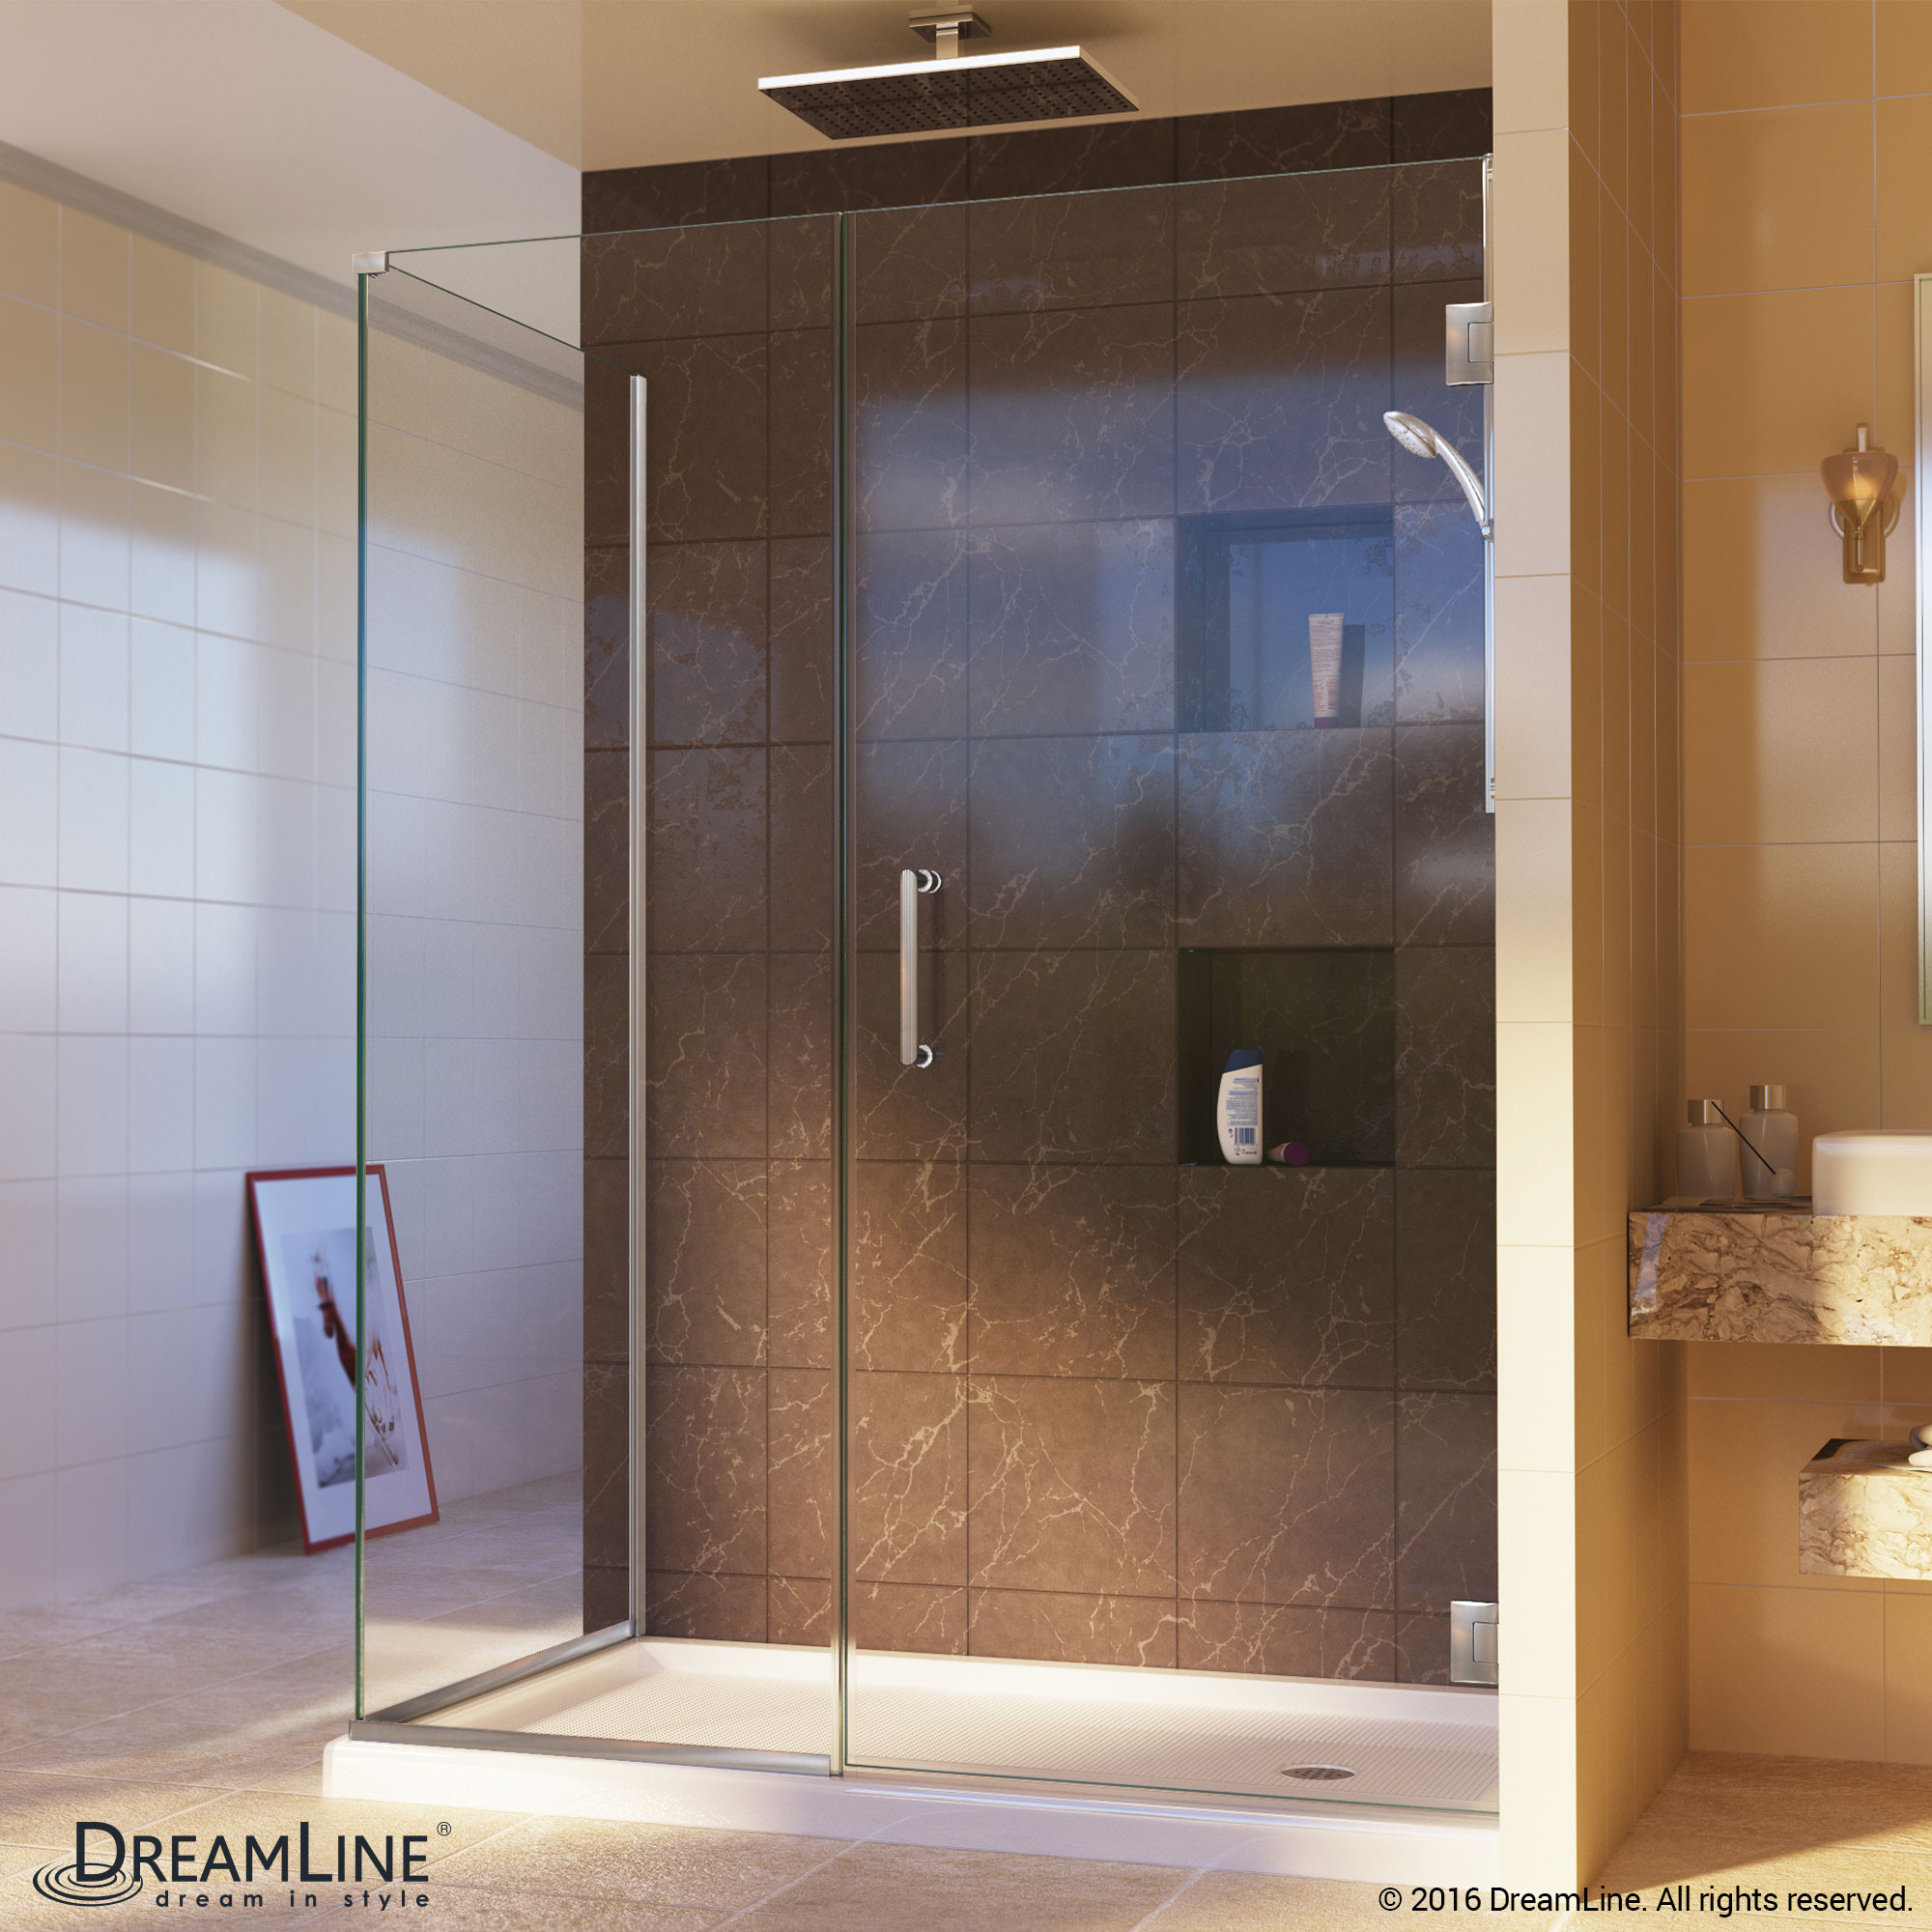 DreamLine SHEN-24375300-04 Unidoor Plus Hinged Shower Enclosure In Brushed Nickel Finish Hardware